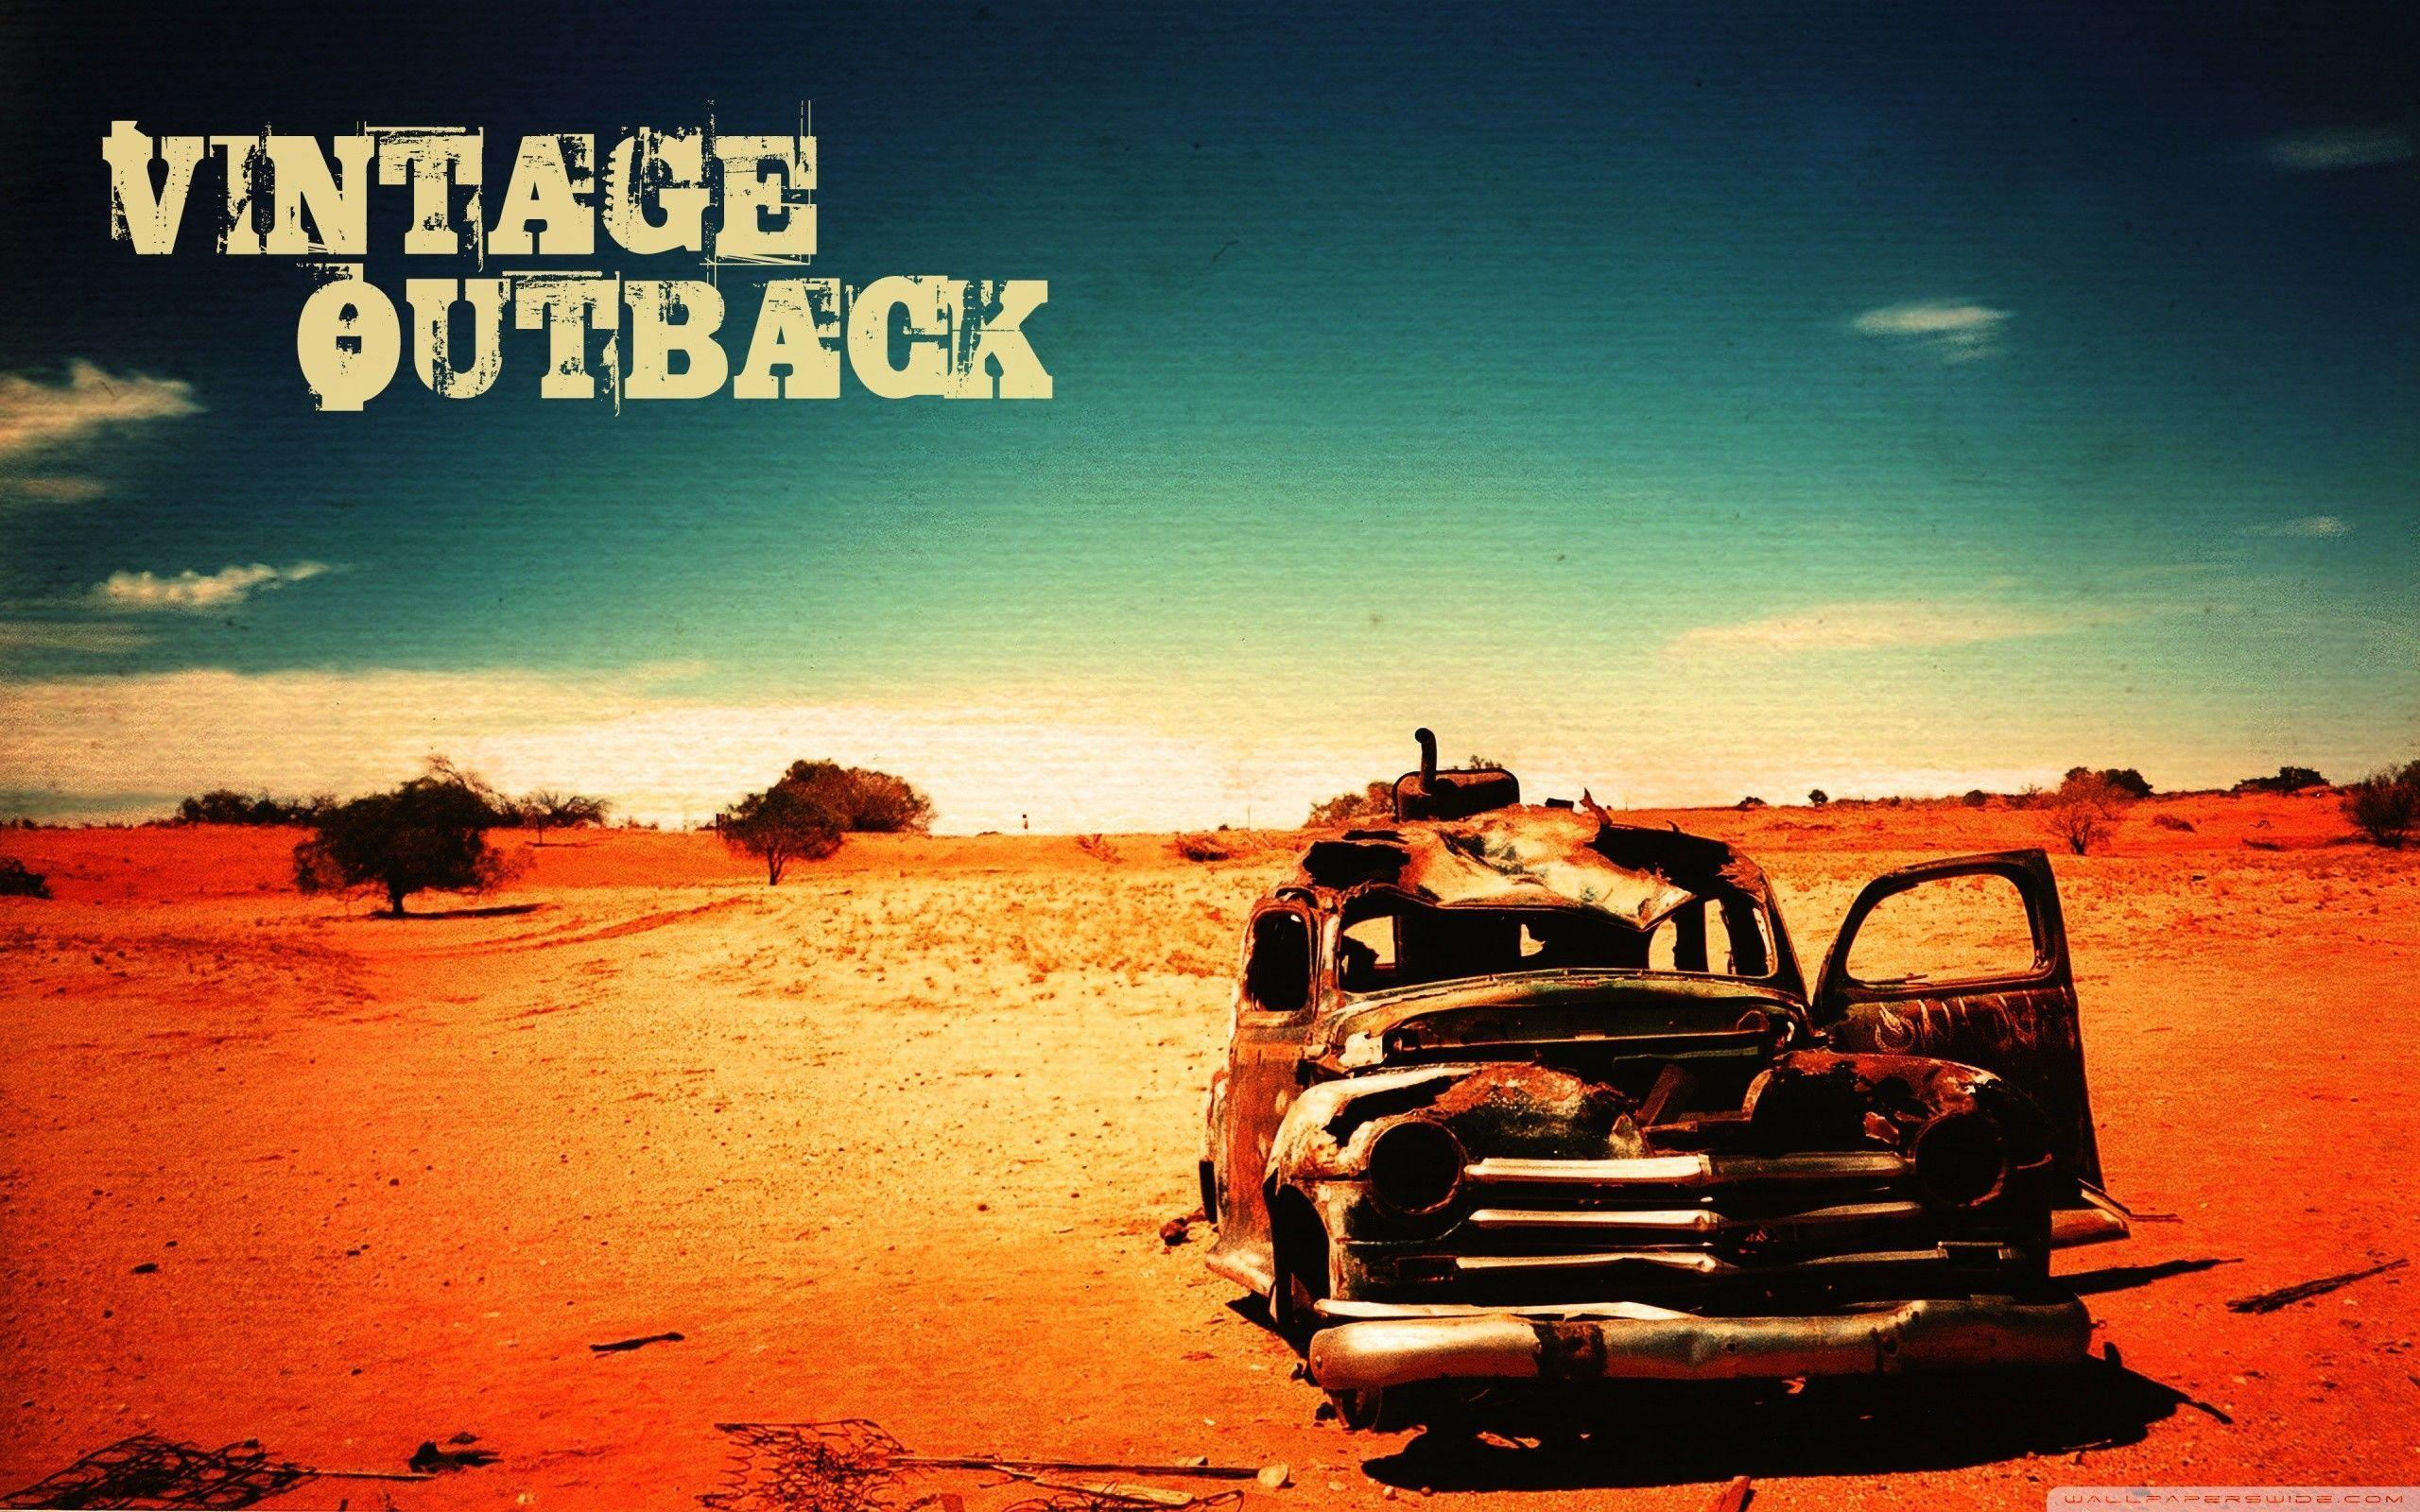 Free Outback Vintage Wallpapers, Free Outback Vintage HD